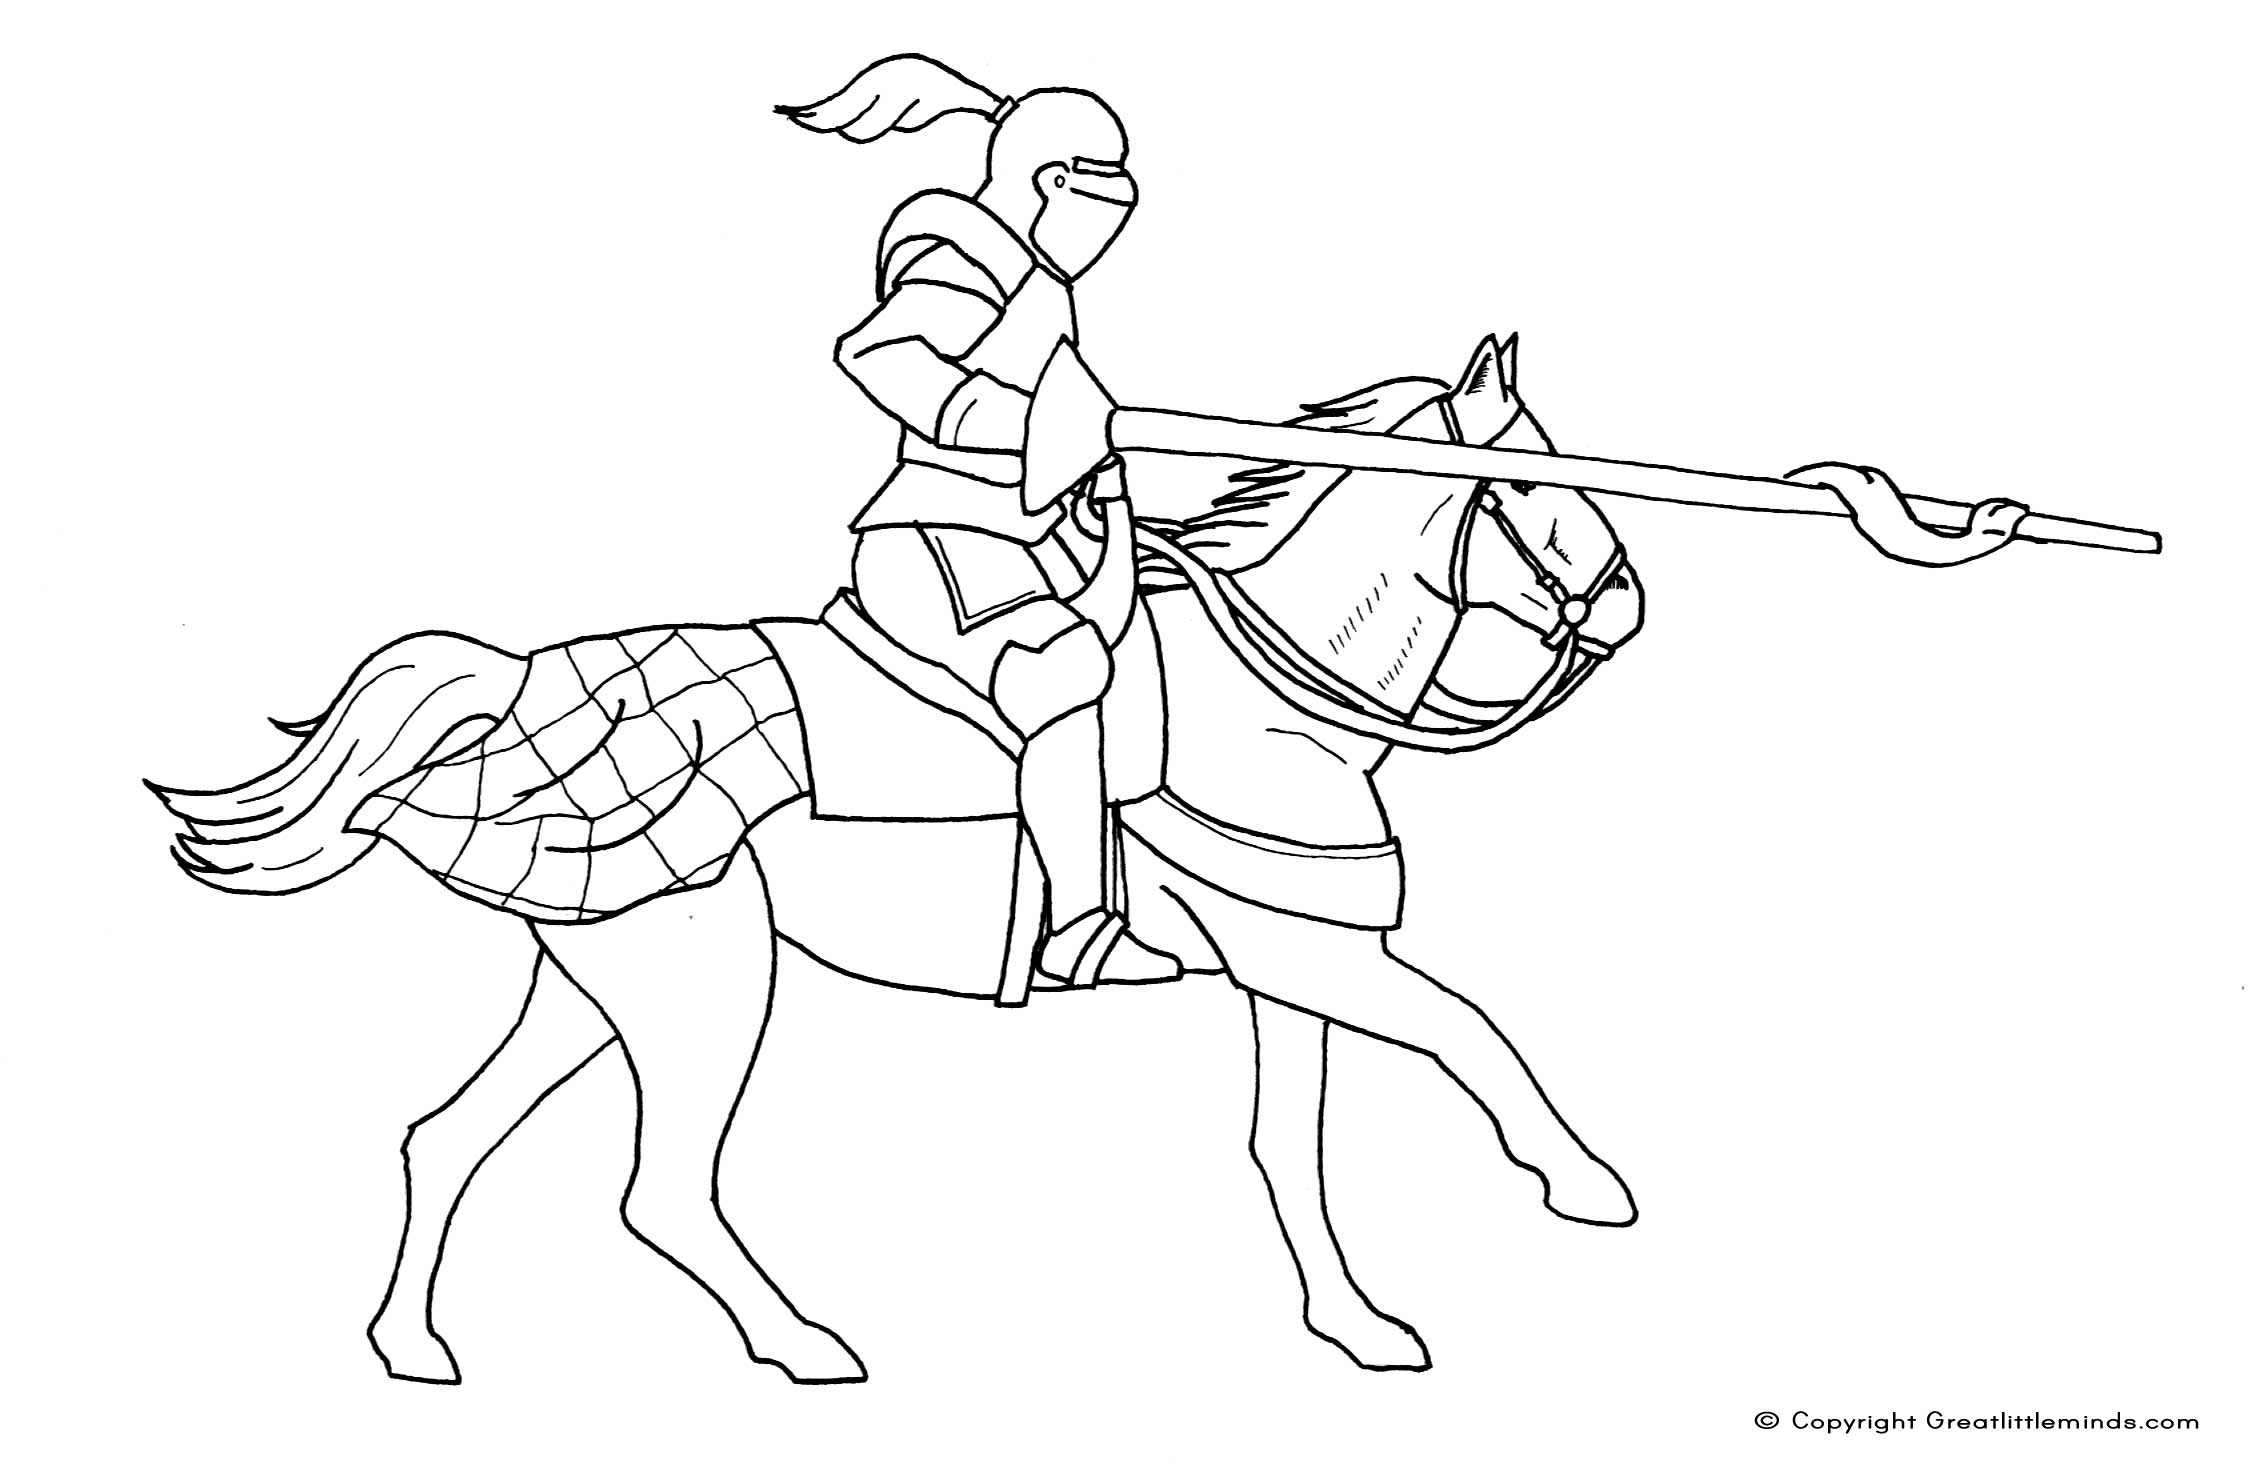 knight on horse coloring page knights coloring pictures download and print out for free page coloring knight on horse